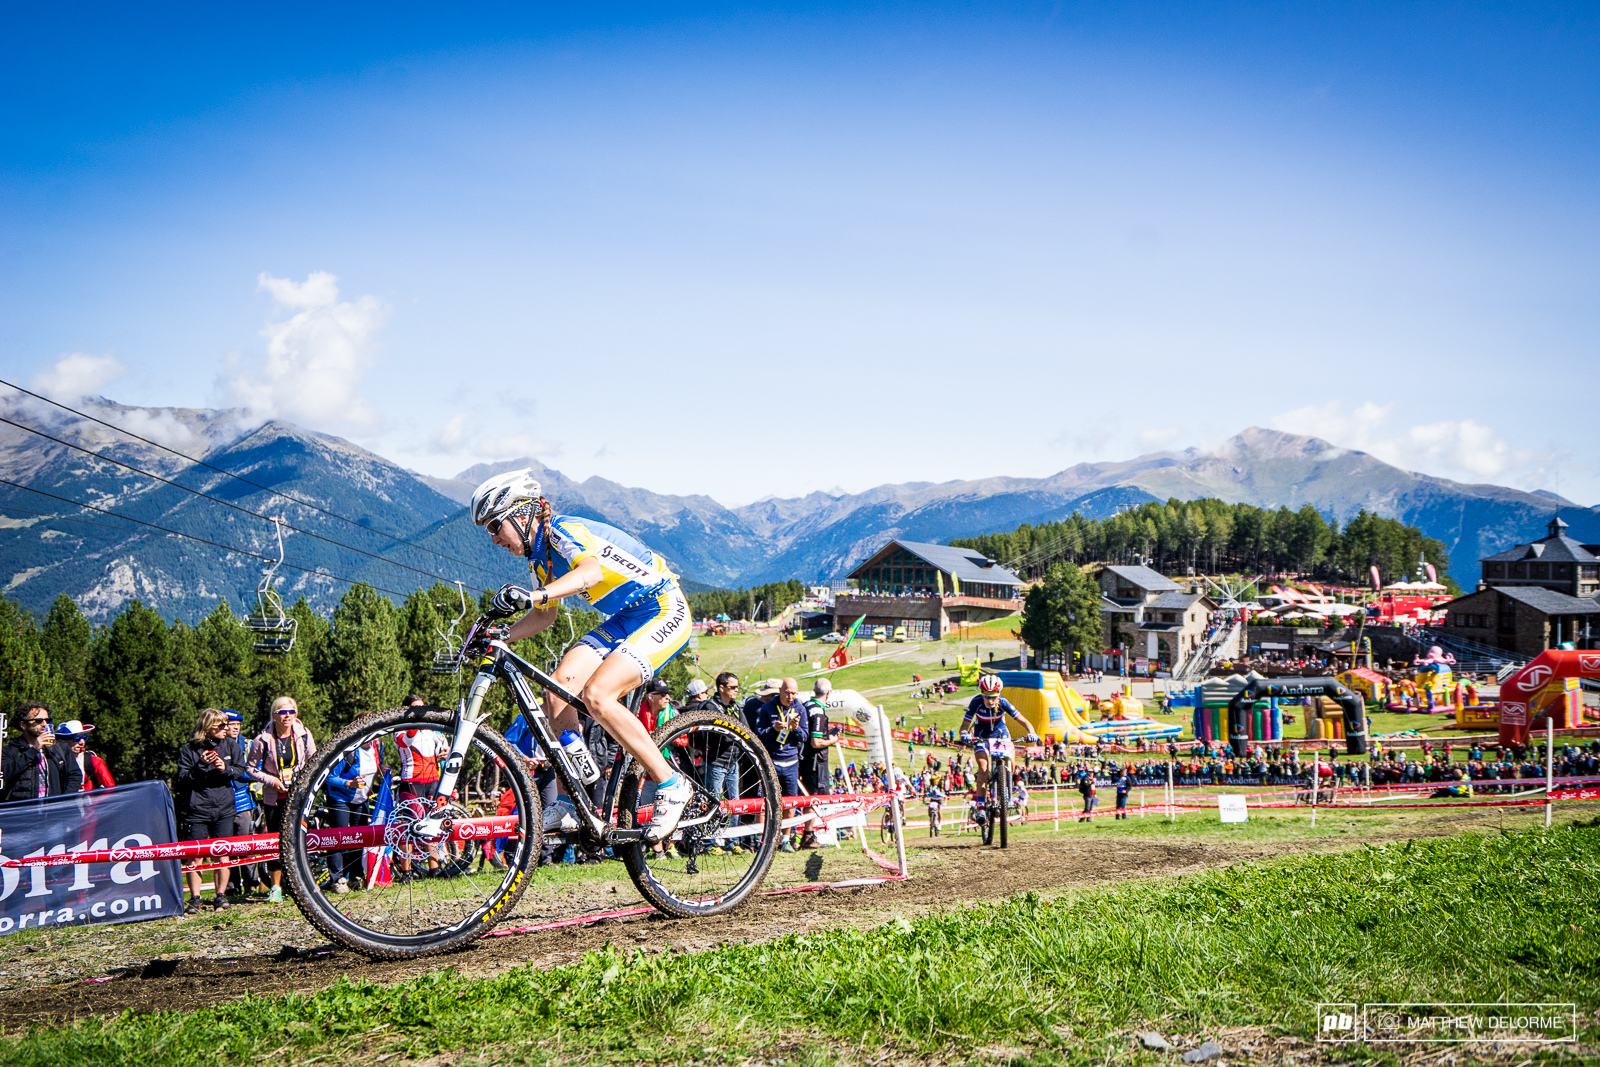 Yana Belomoina may have had the ride of the race. The Ukrainian finished third.